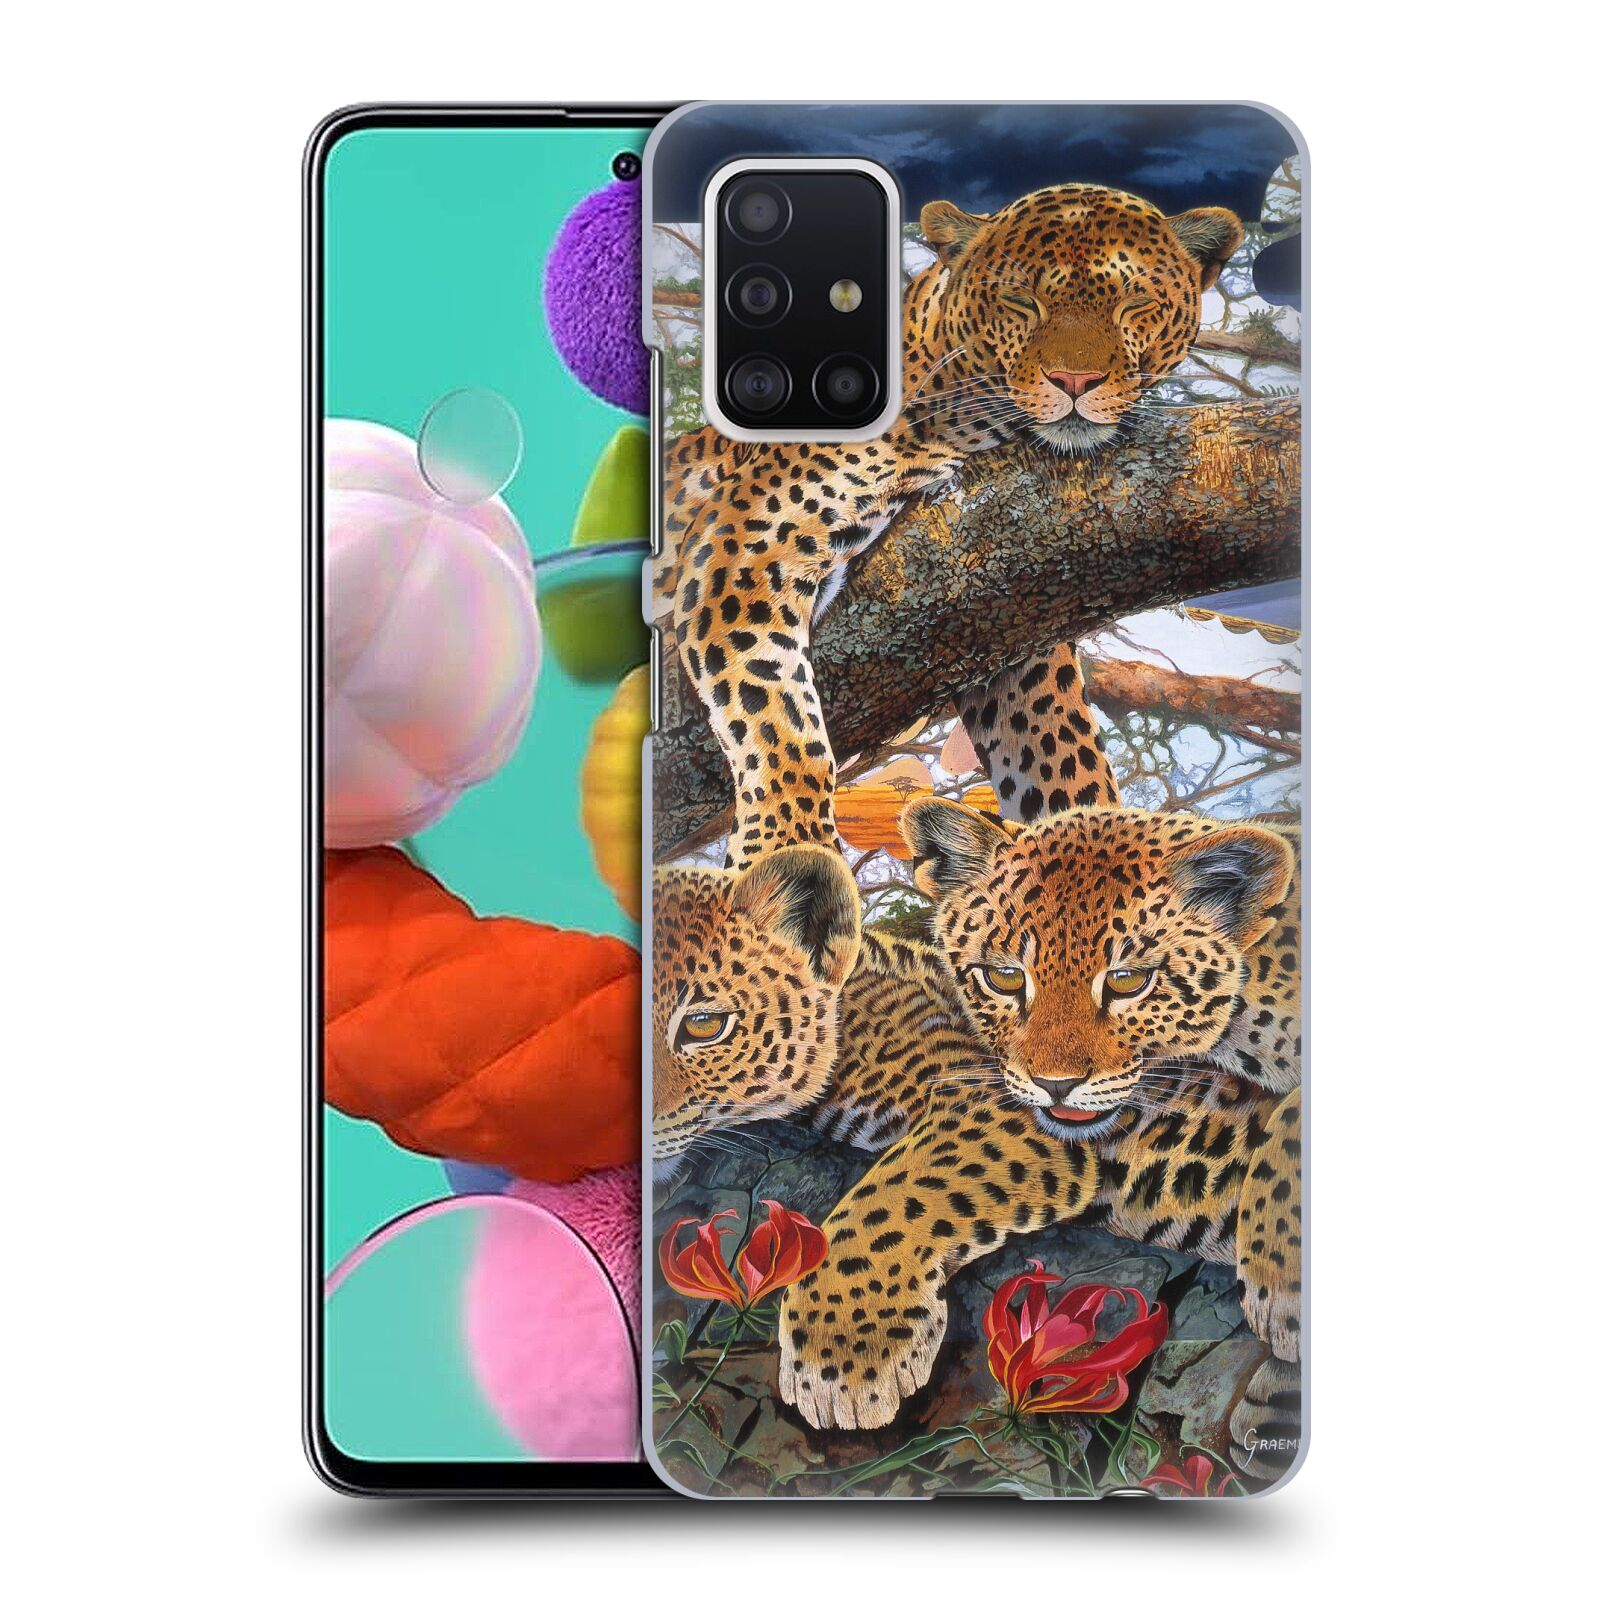 Official Graeme Stevenson Wildlife Leopard Case for Samsung Galaxy A51 (2019)